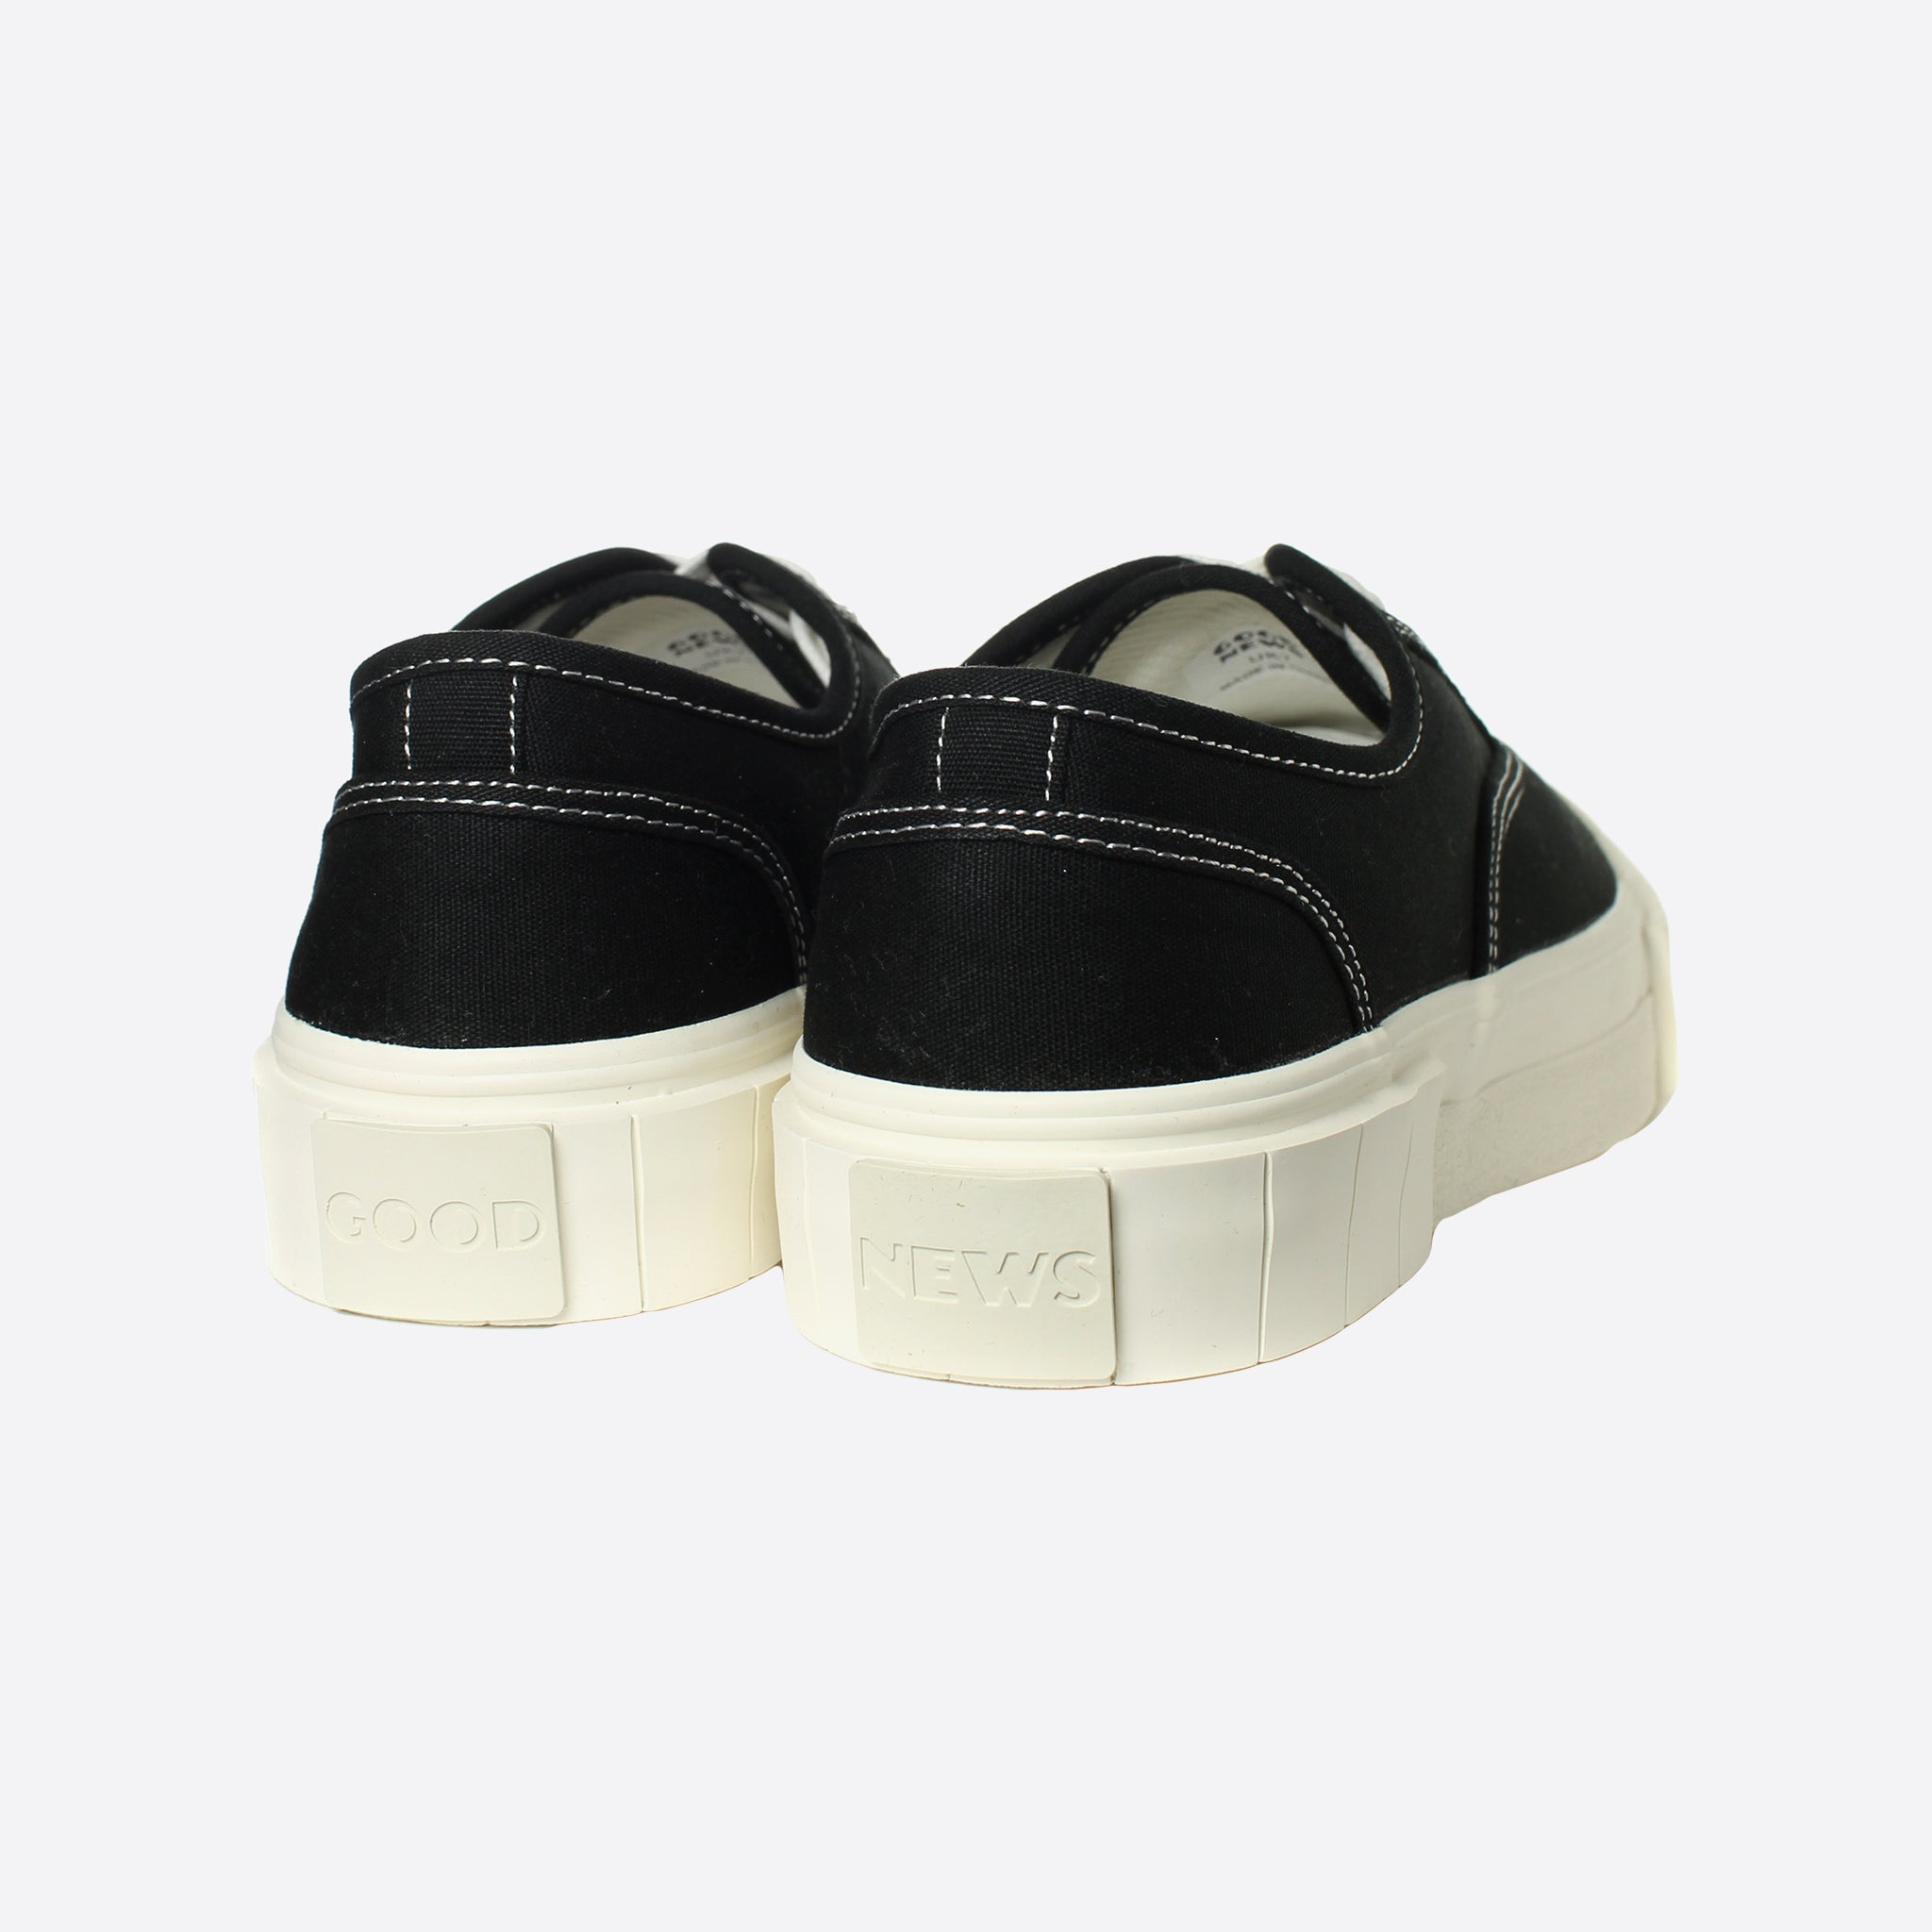 Good News Bagger 2 Low in Black